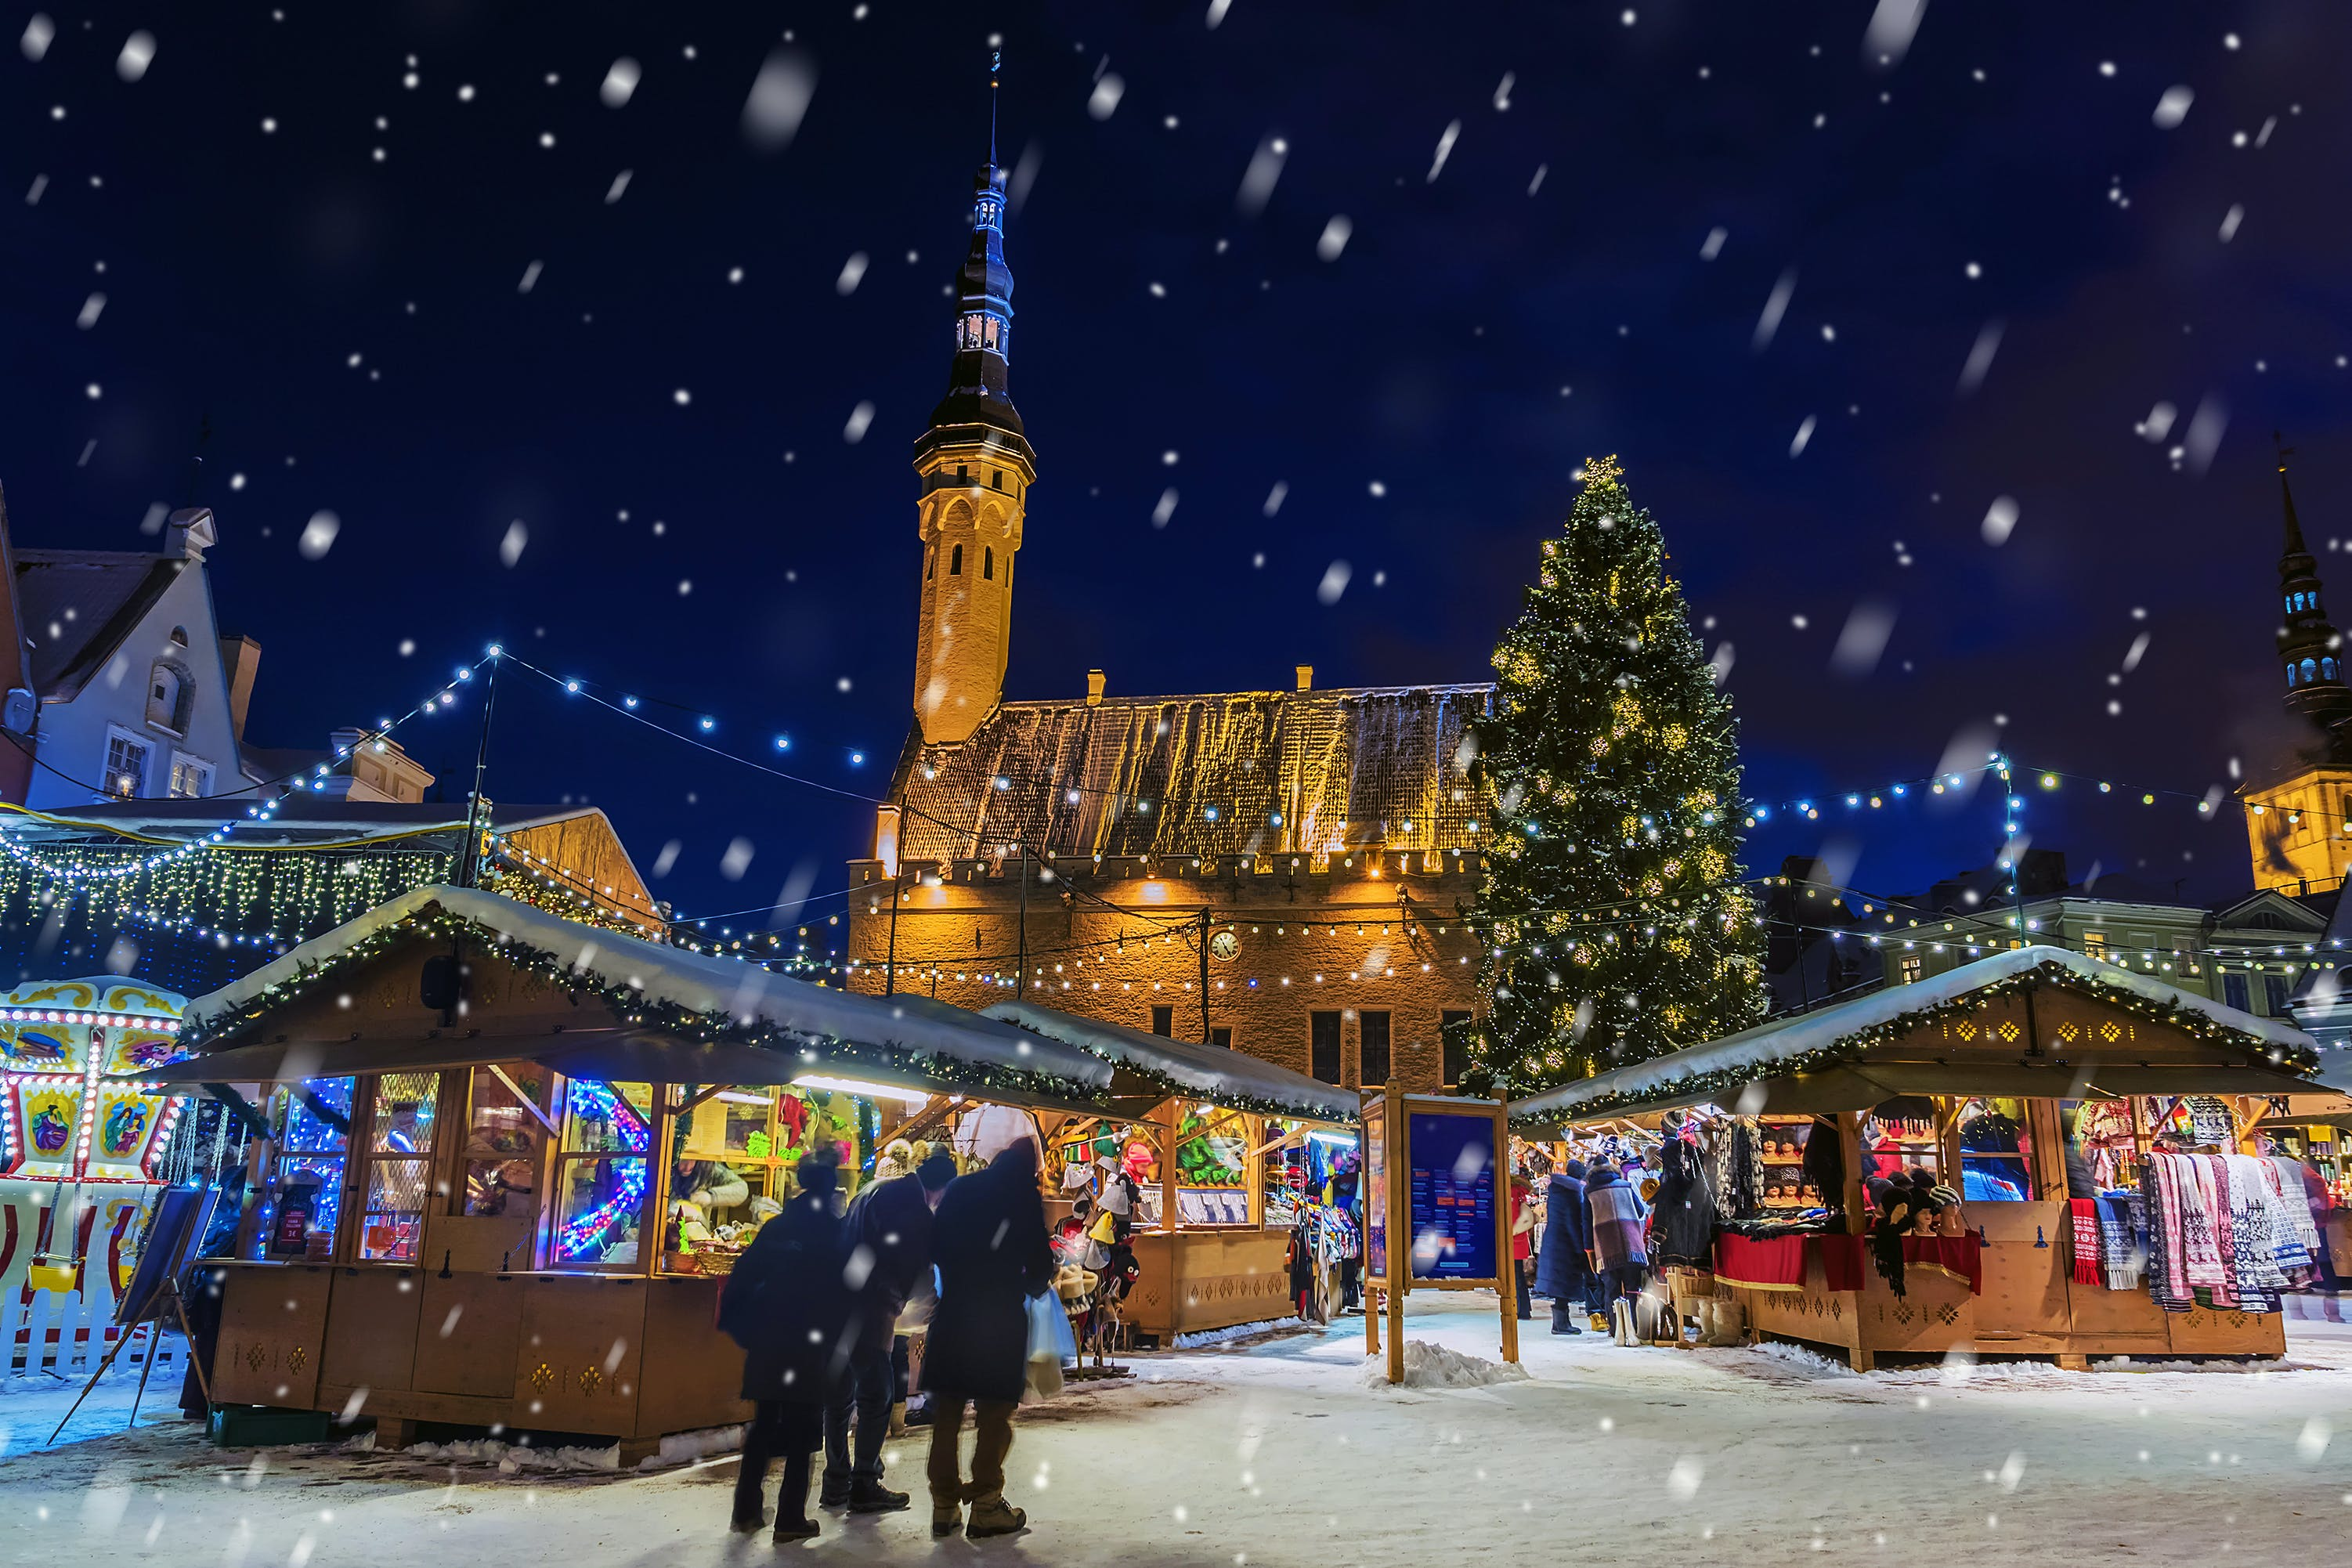 Experience true holiday merrymaking on a family river cruise through Europe's most famous Christmas markets.